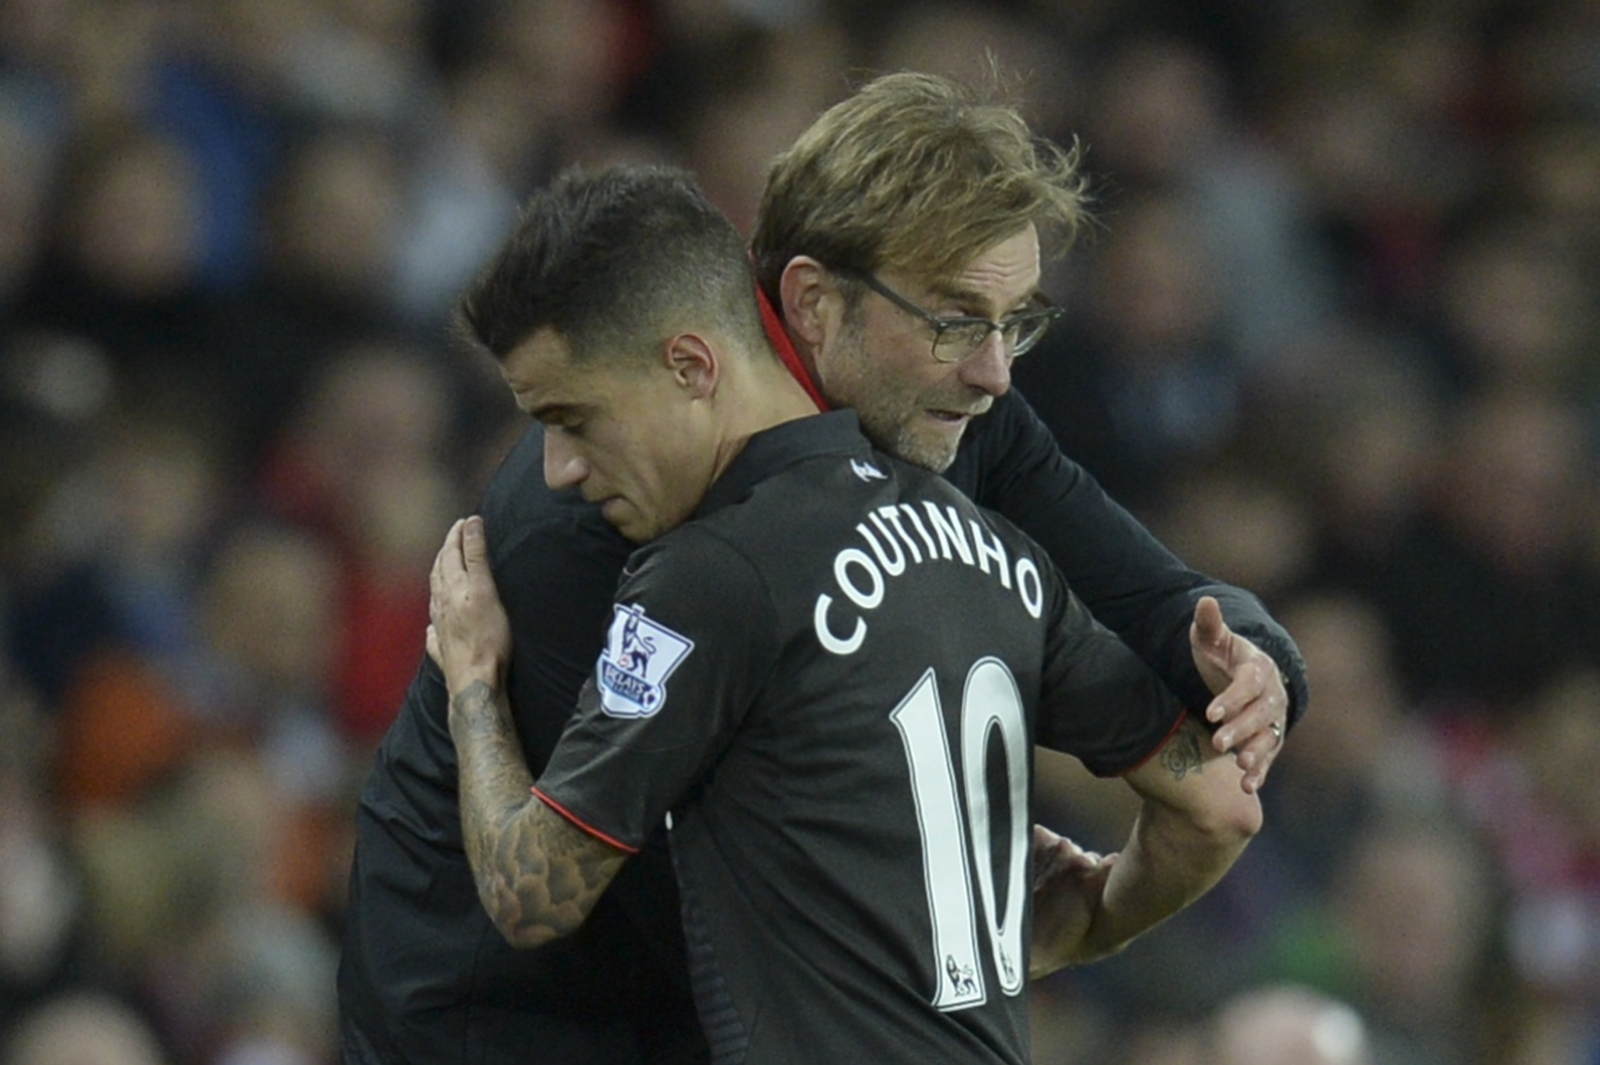 Jurgen Klopp insists Philippe Coutinho is not for sale despite Barcelona interest